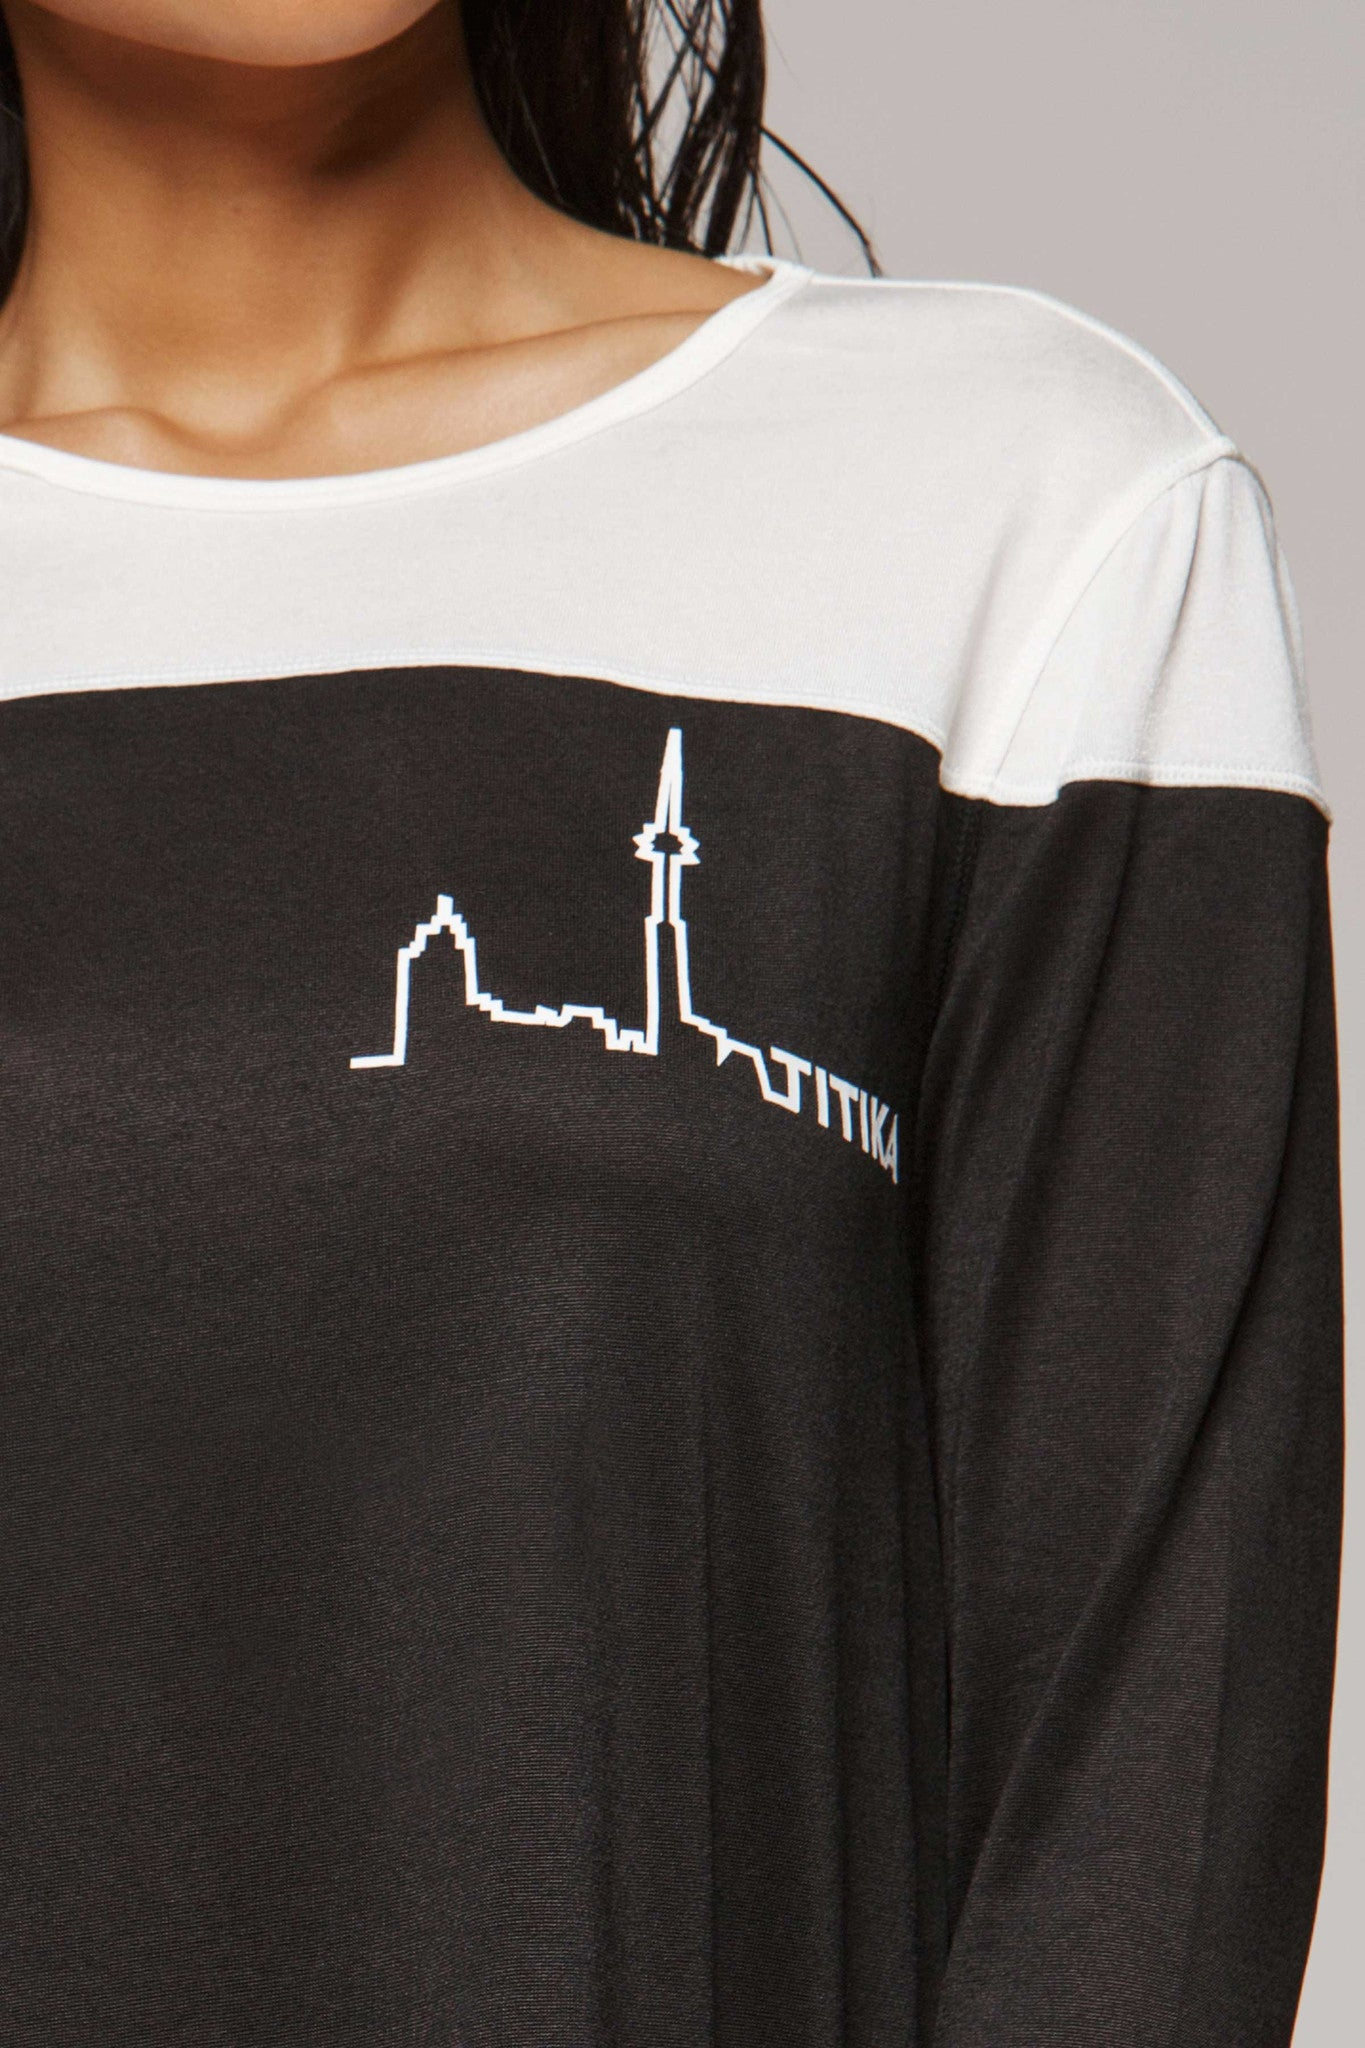 CN Tower Long Sleeve Tee